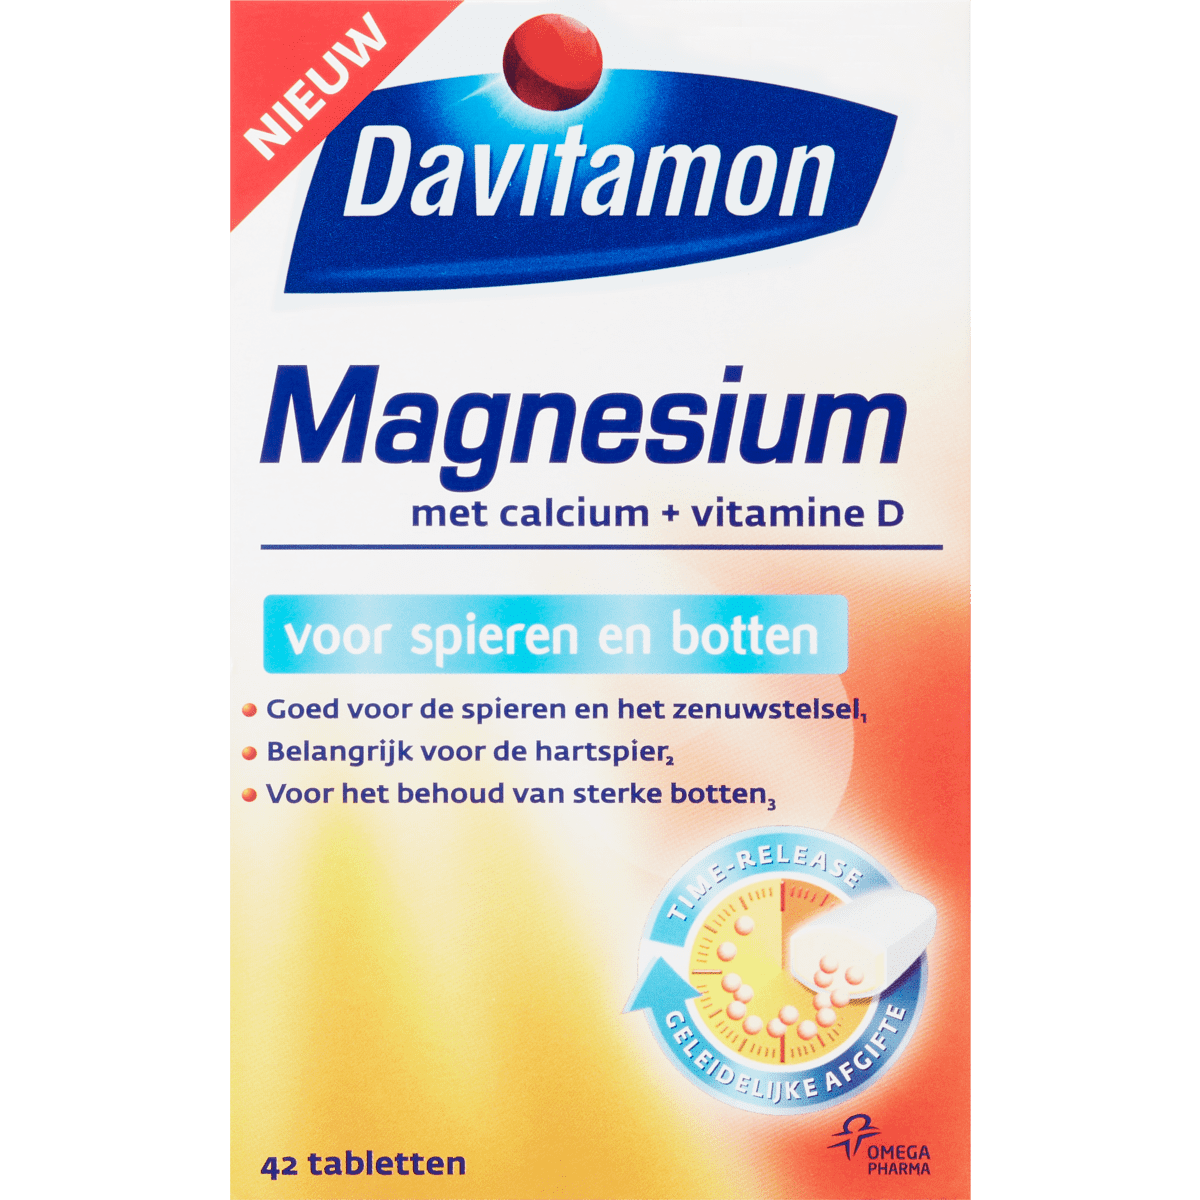 Calcium Tabletten Davitamon Magnesium Met Calcium Vitamine D Tabletten